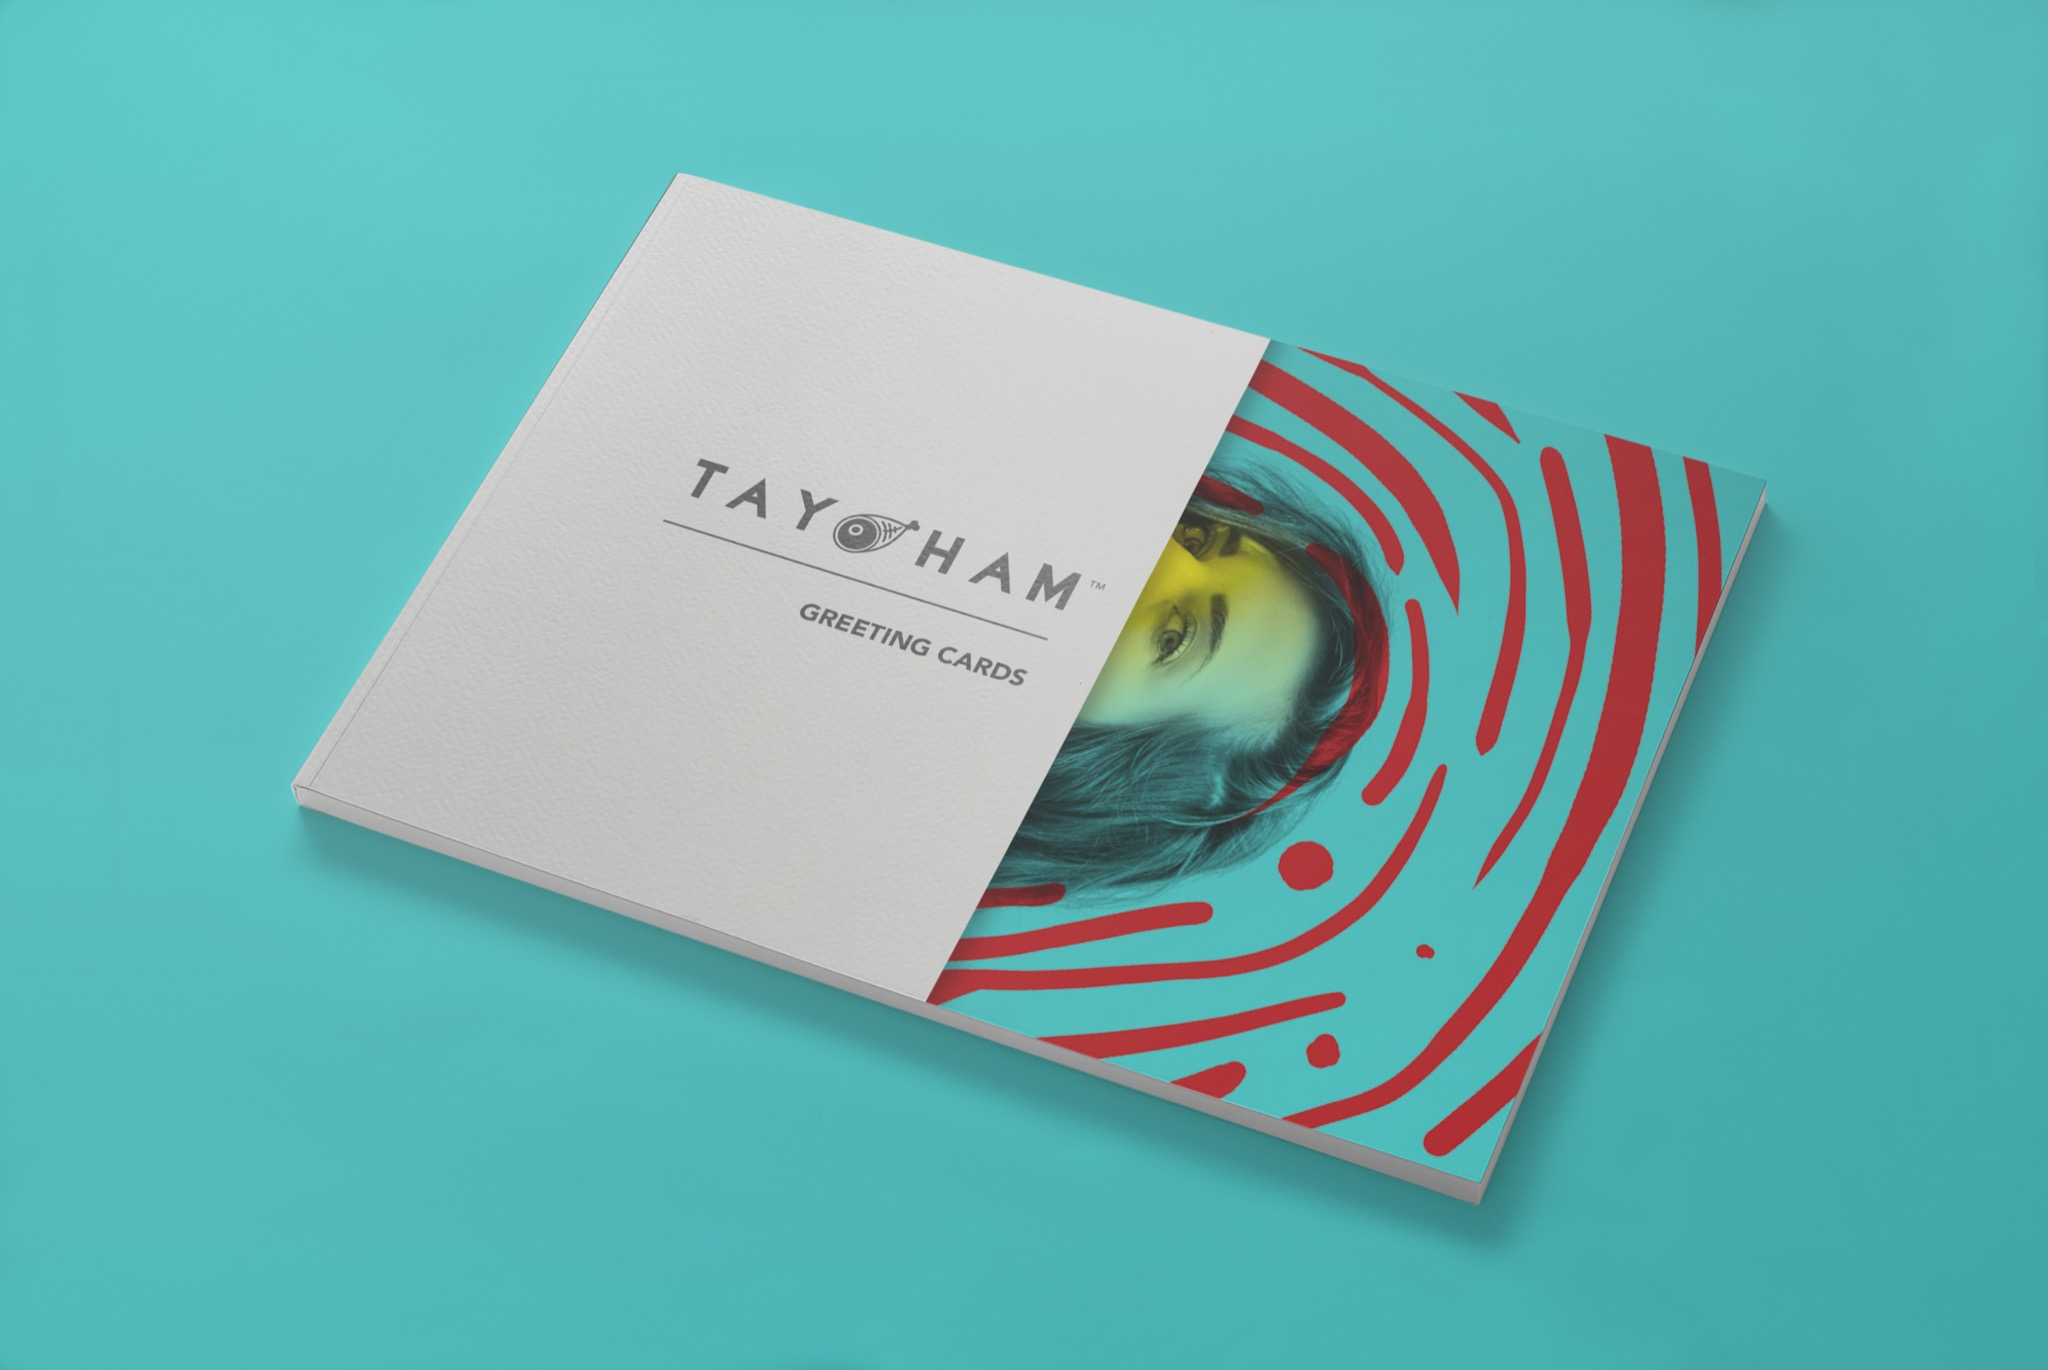 TAY HAM Greeting Cards Catalog Design for Trade Show by Brand Engine